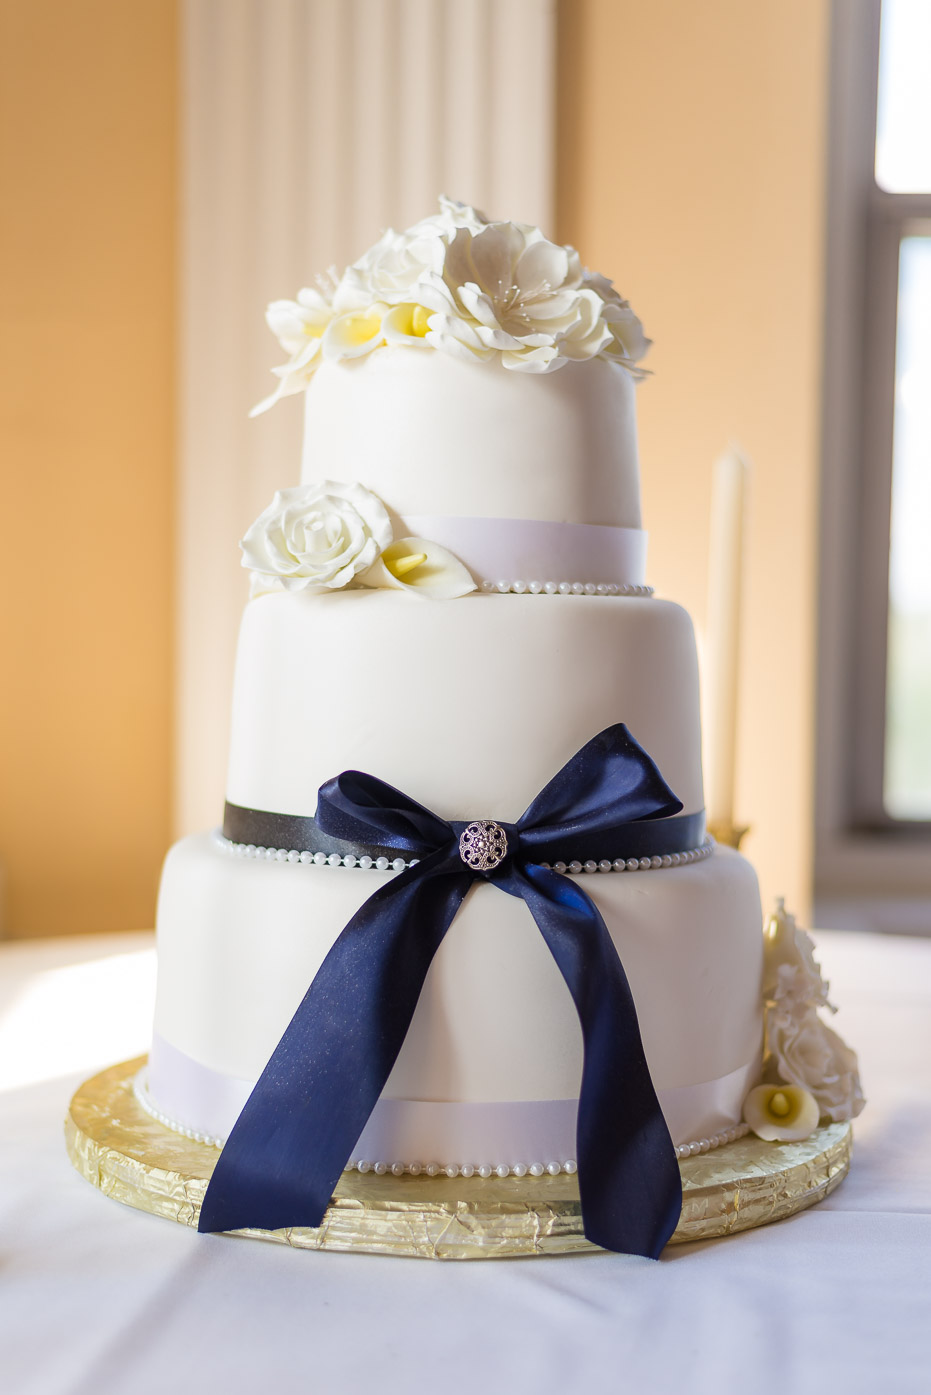 Wedding Cake with Blue Bow and Flowers